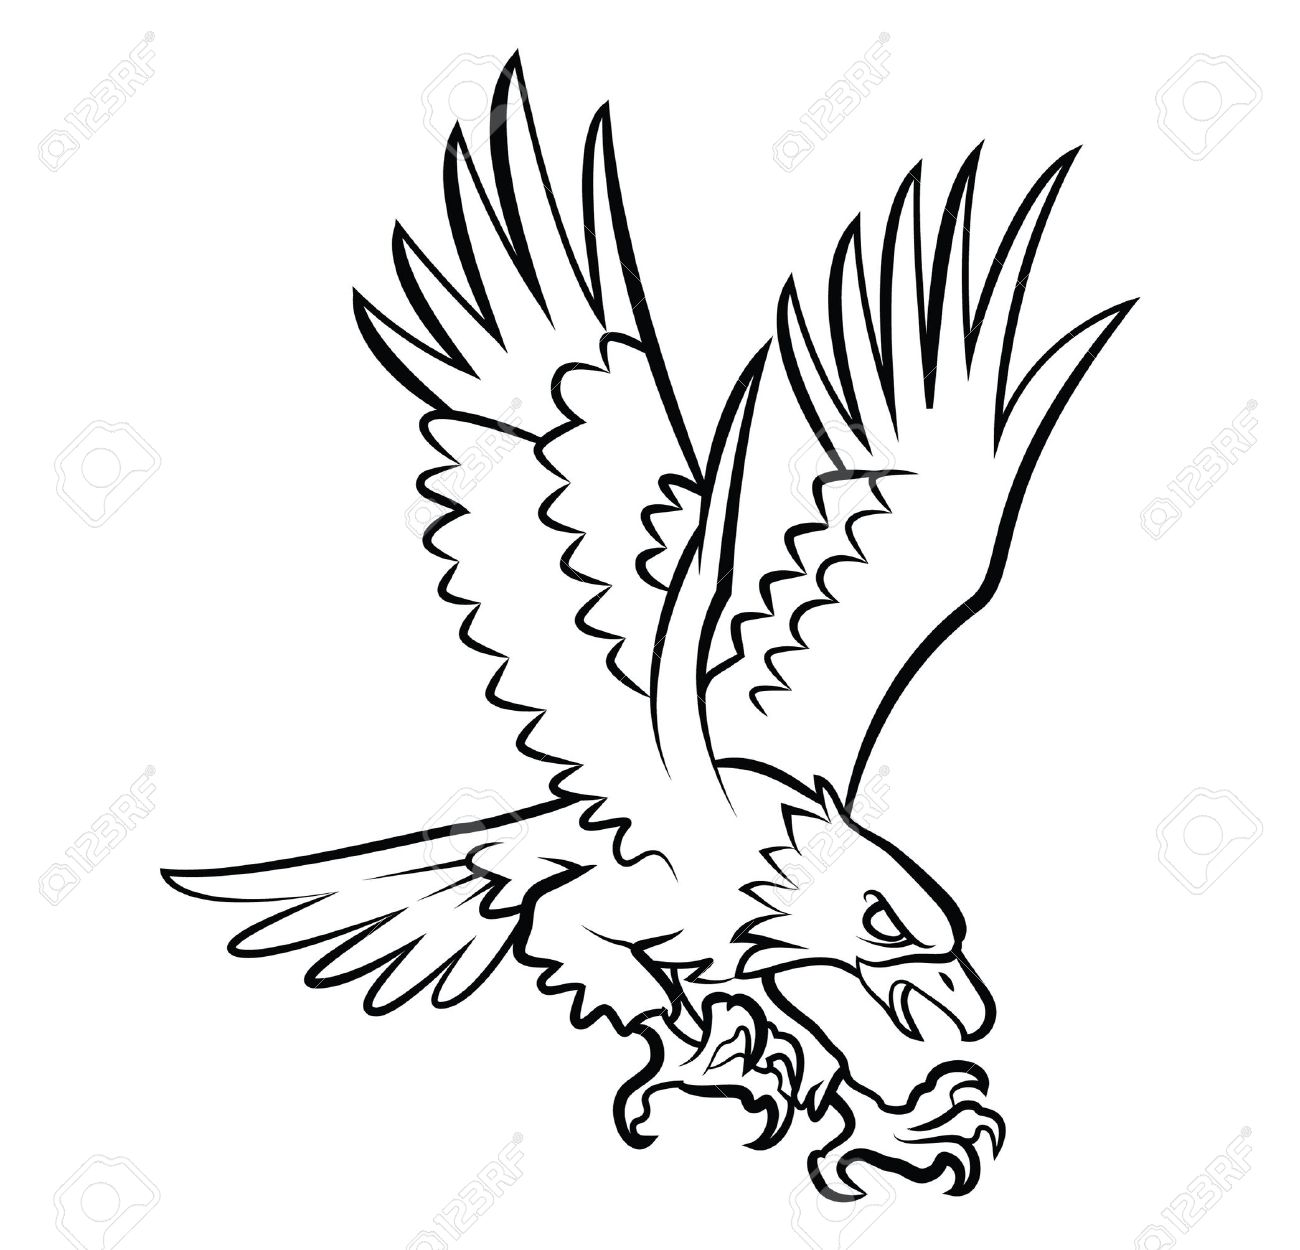 1300x1250 Hawk Stock Photos. Royalty Free Business Images